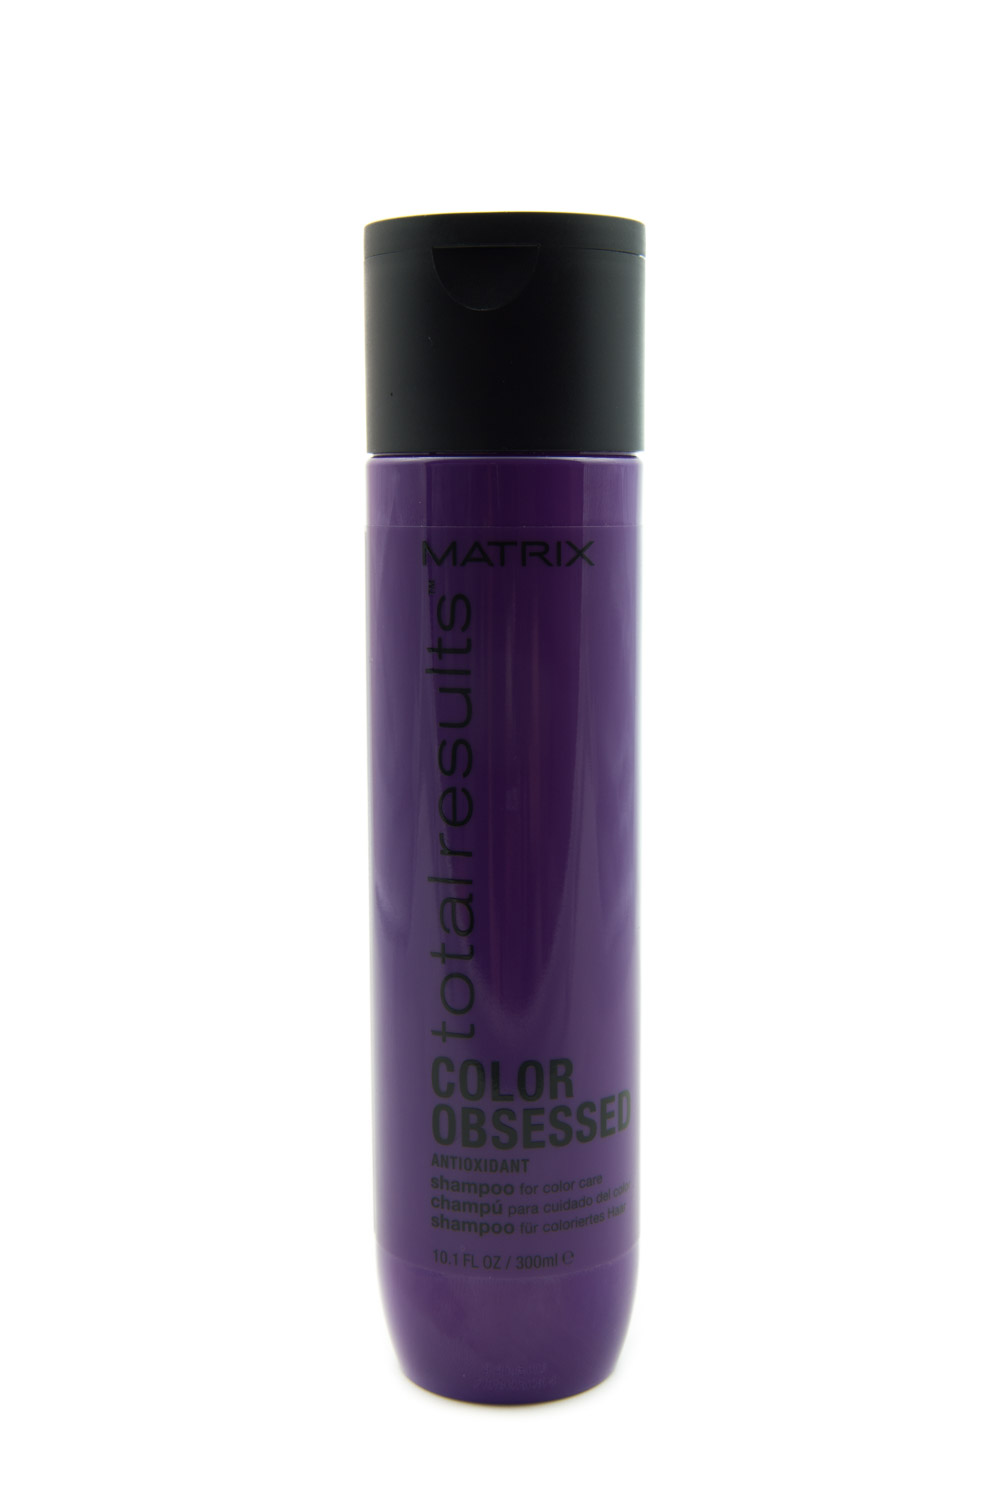 Szampon Matrix Color Obsessed Antioxidant 300ml